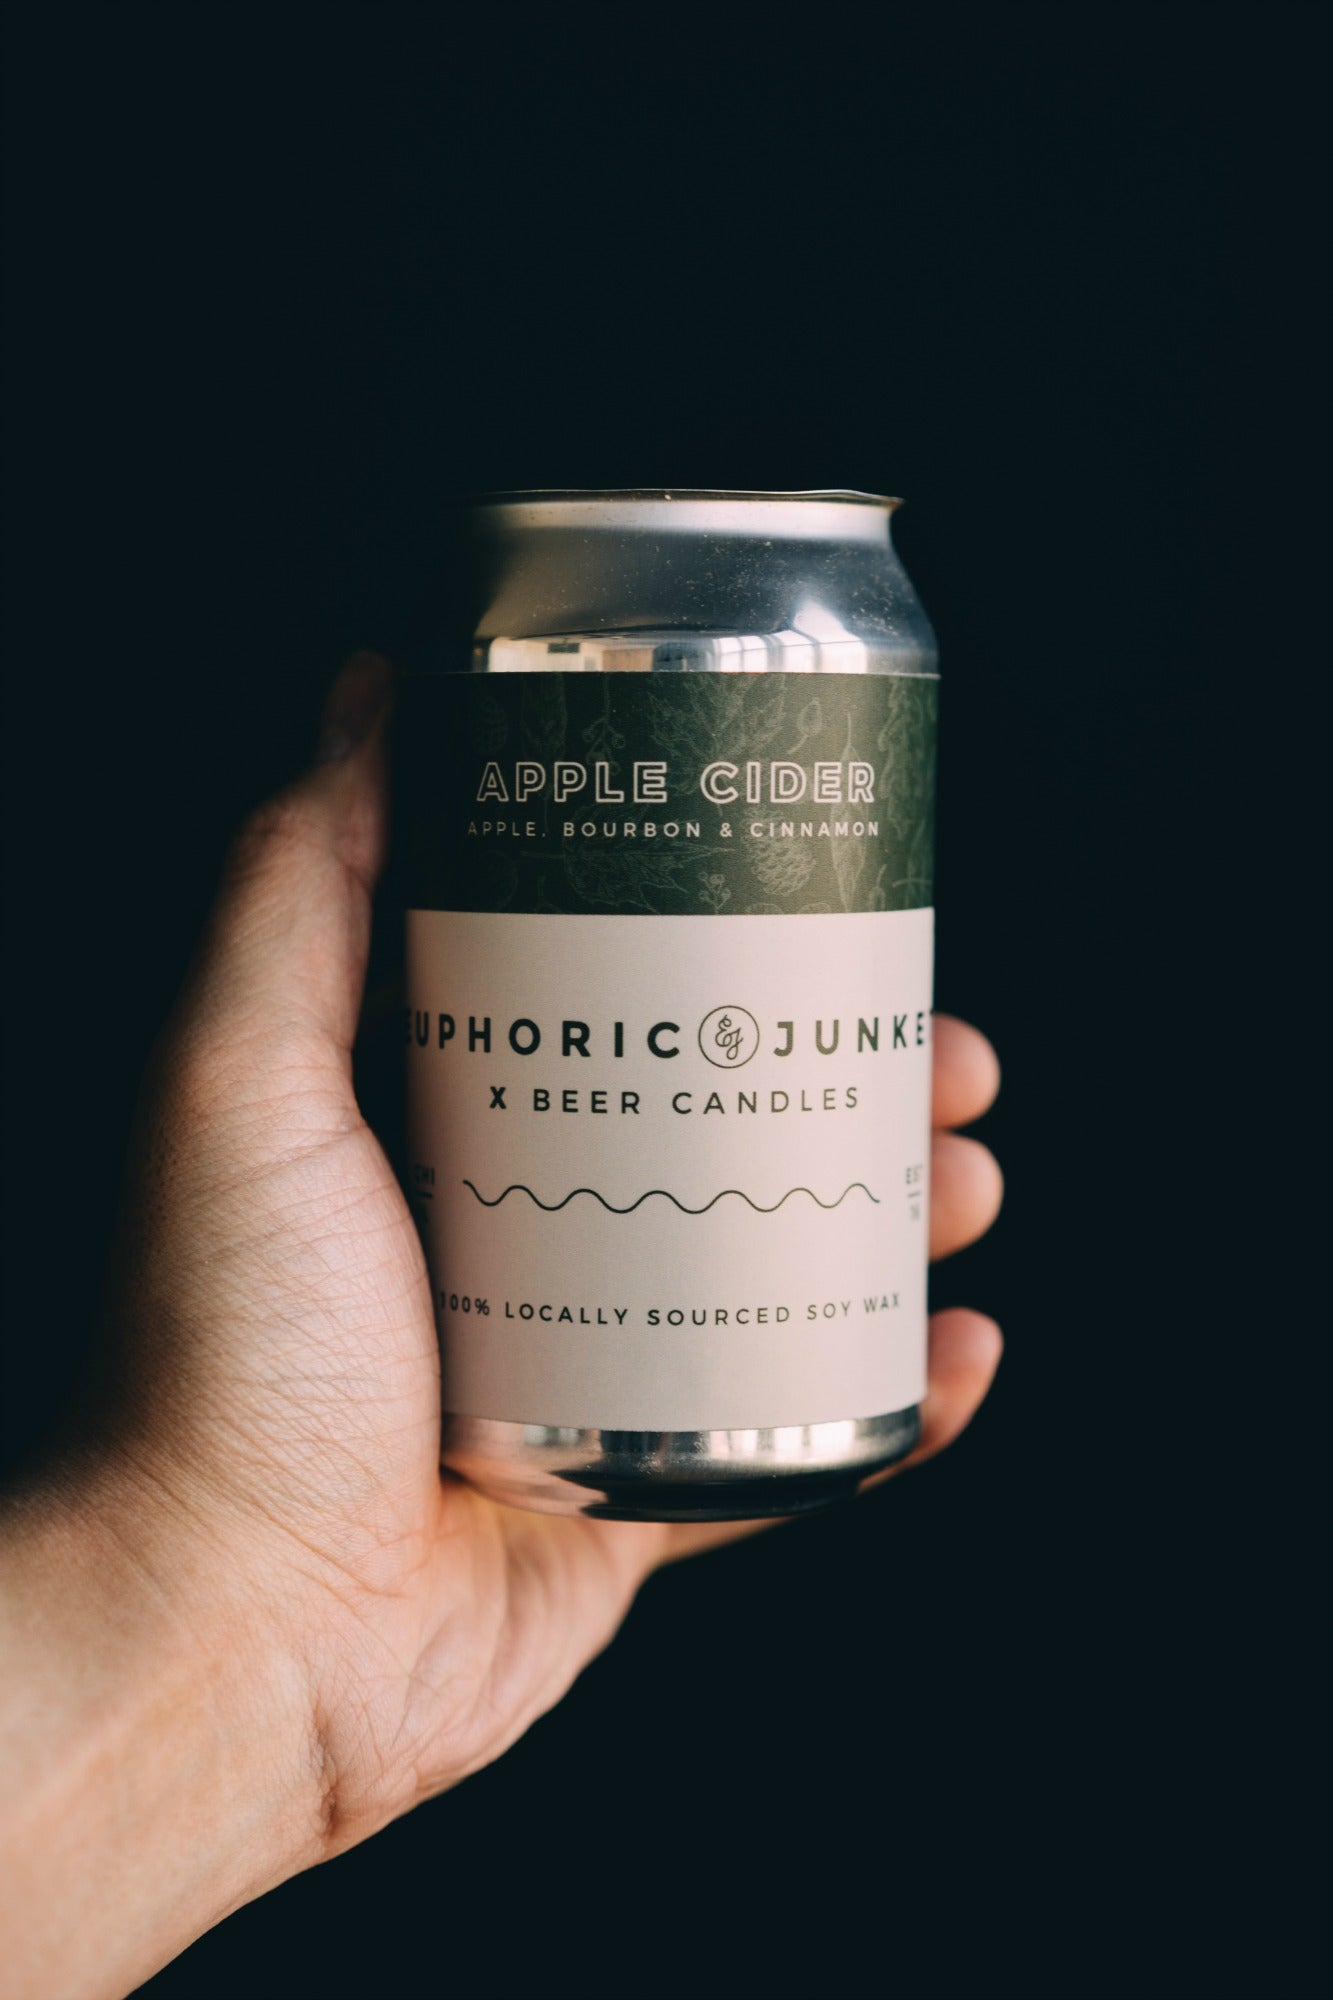 Apple Cider CAN·dle (Limited Seasonal Release)